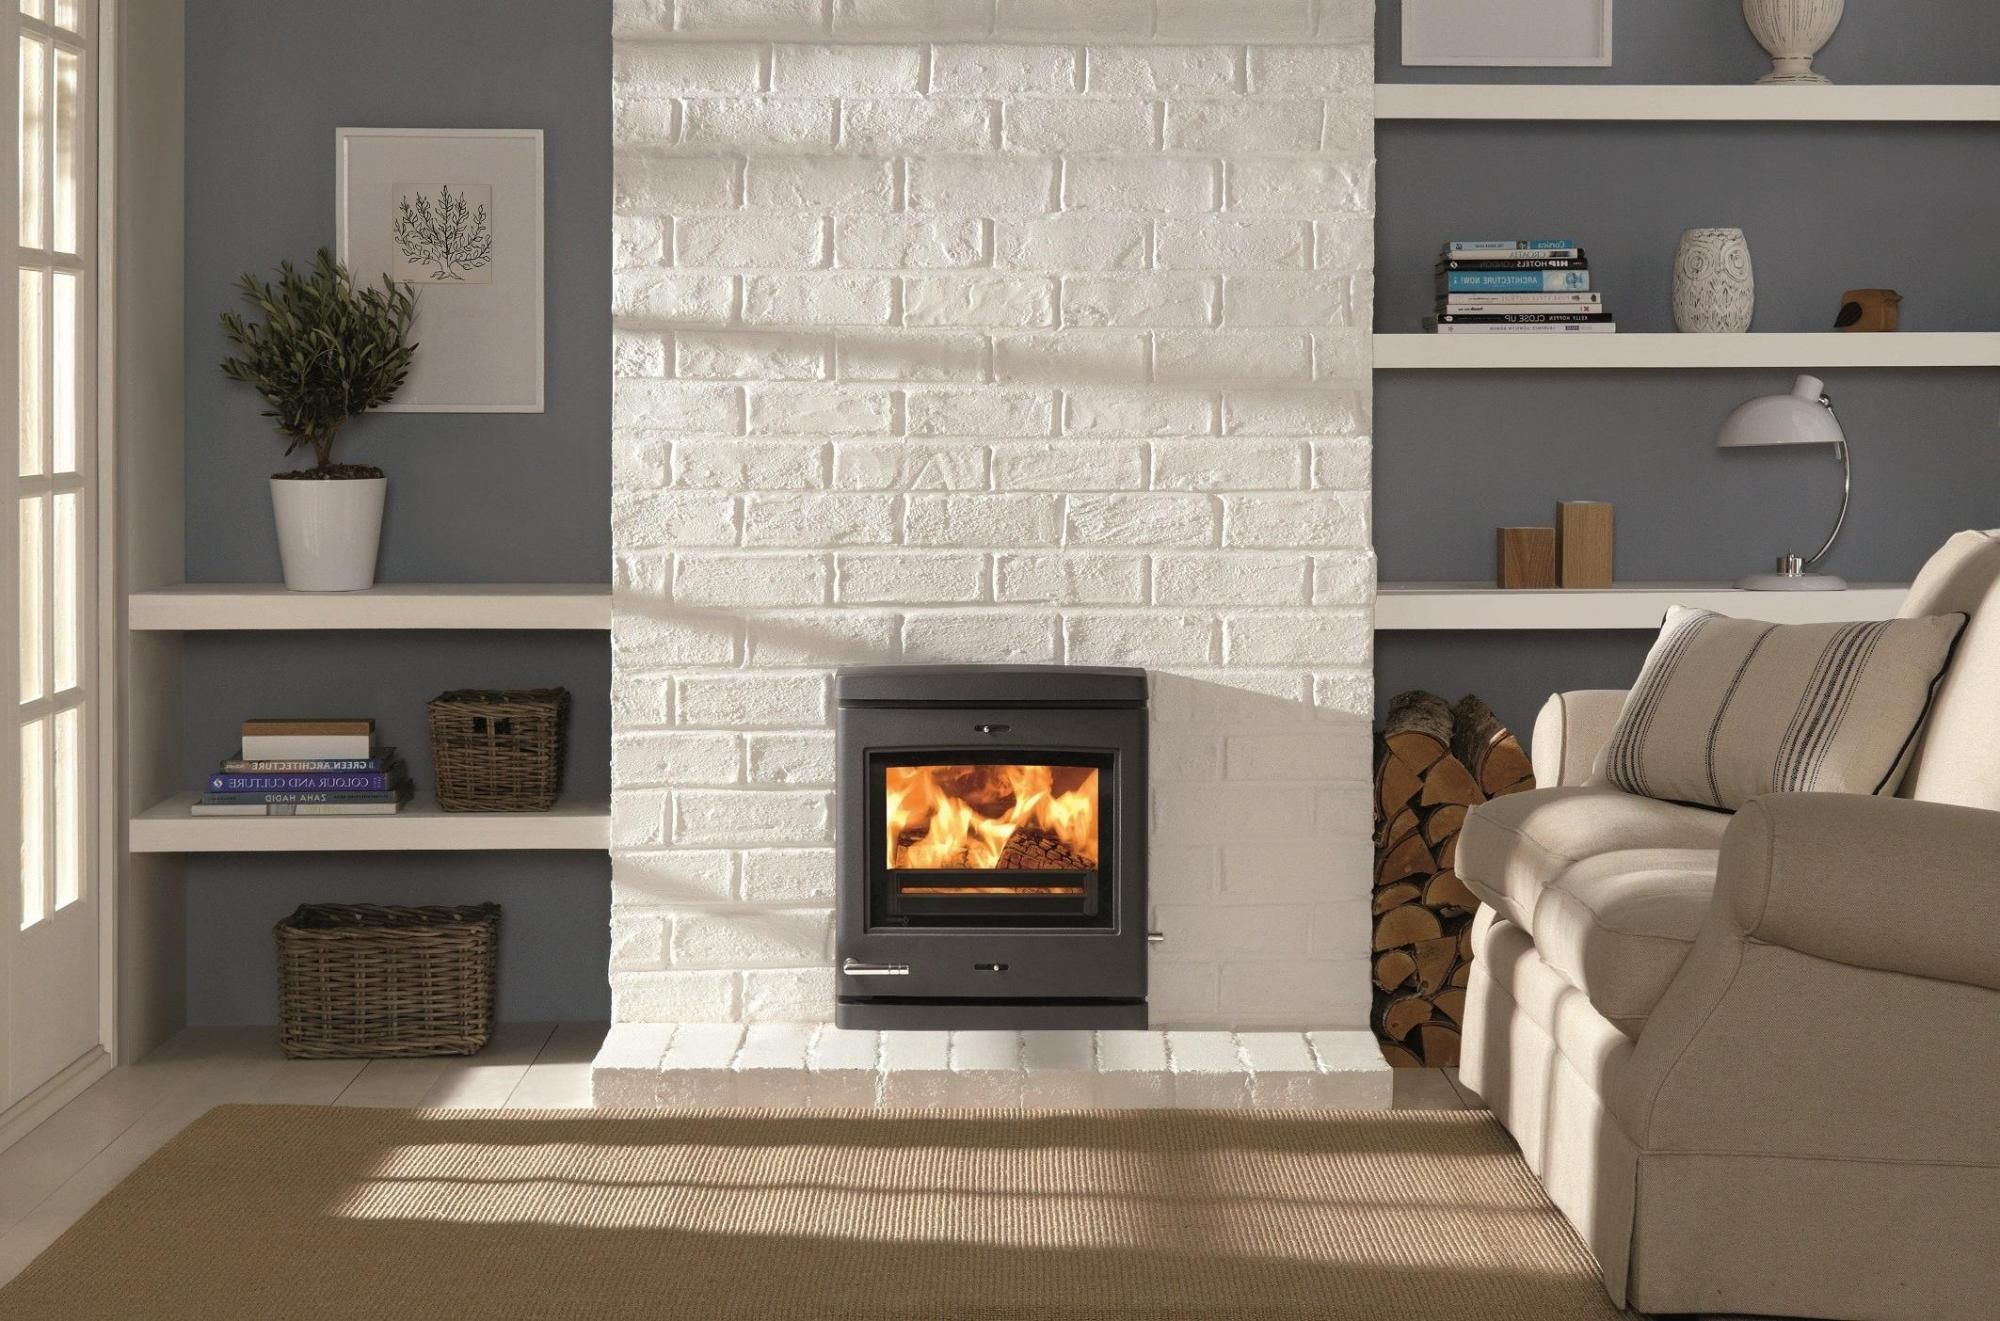 Contemporary Outstanding Electric Fireplace Design Insert On The White Stone Wall Between Shelve Fireplace Wall White Brick Fireplace Modern Electric Fireplace